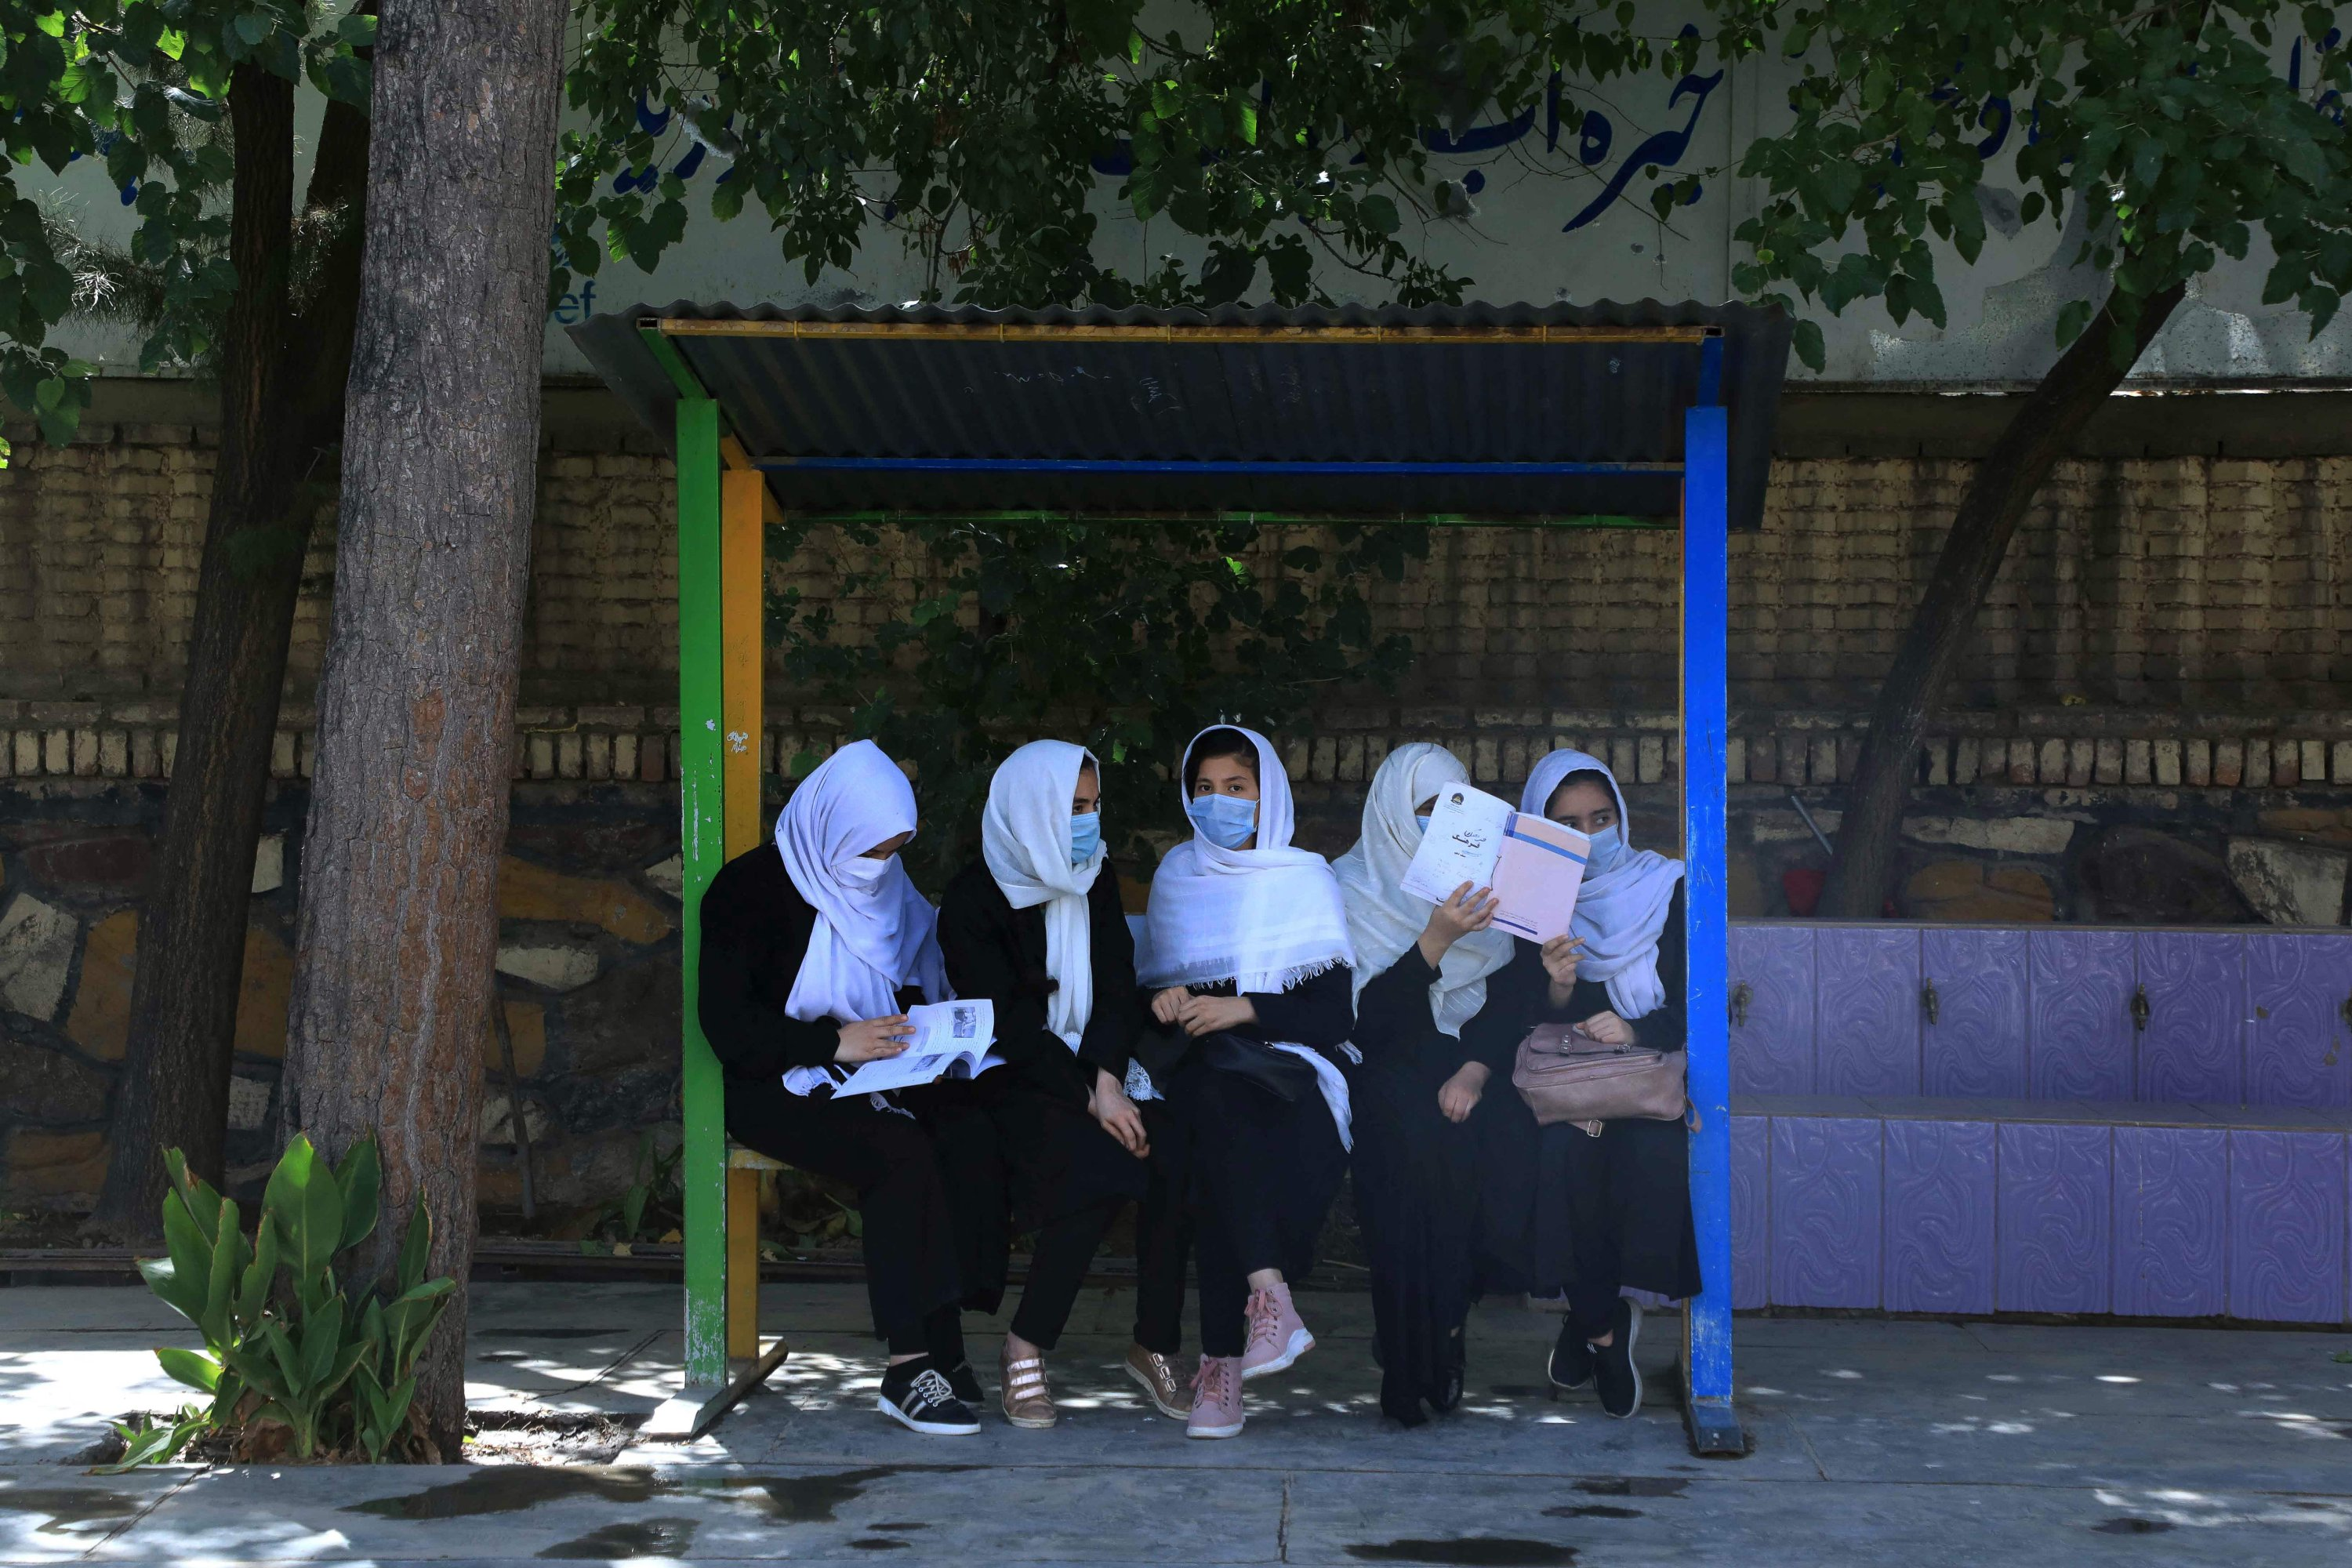 Schoolgirls sit in a schoolyard in Herat, Afghanistan, Aug. 17, 2021, following the Taliban's stunning takeover of the country. (AFP Photo)